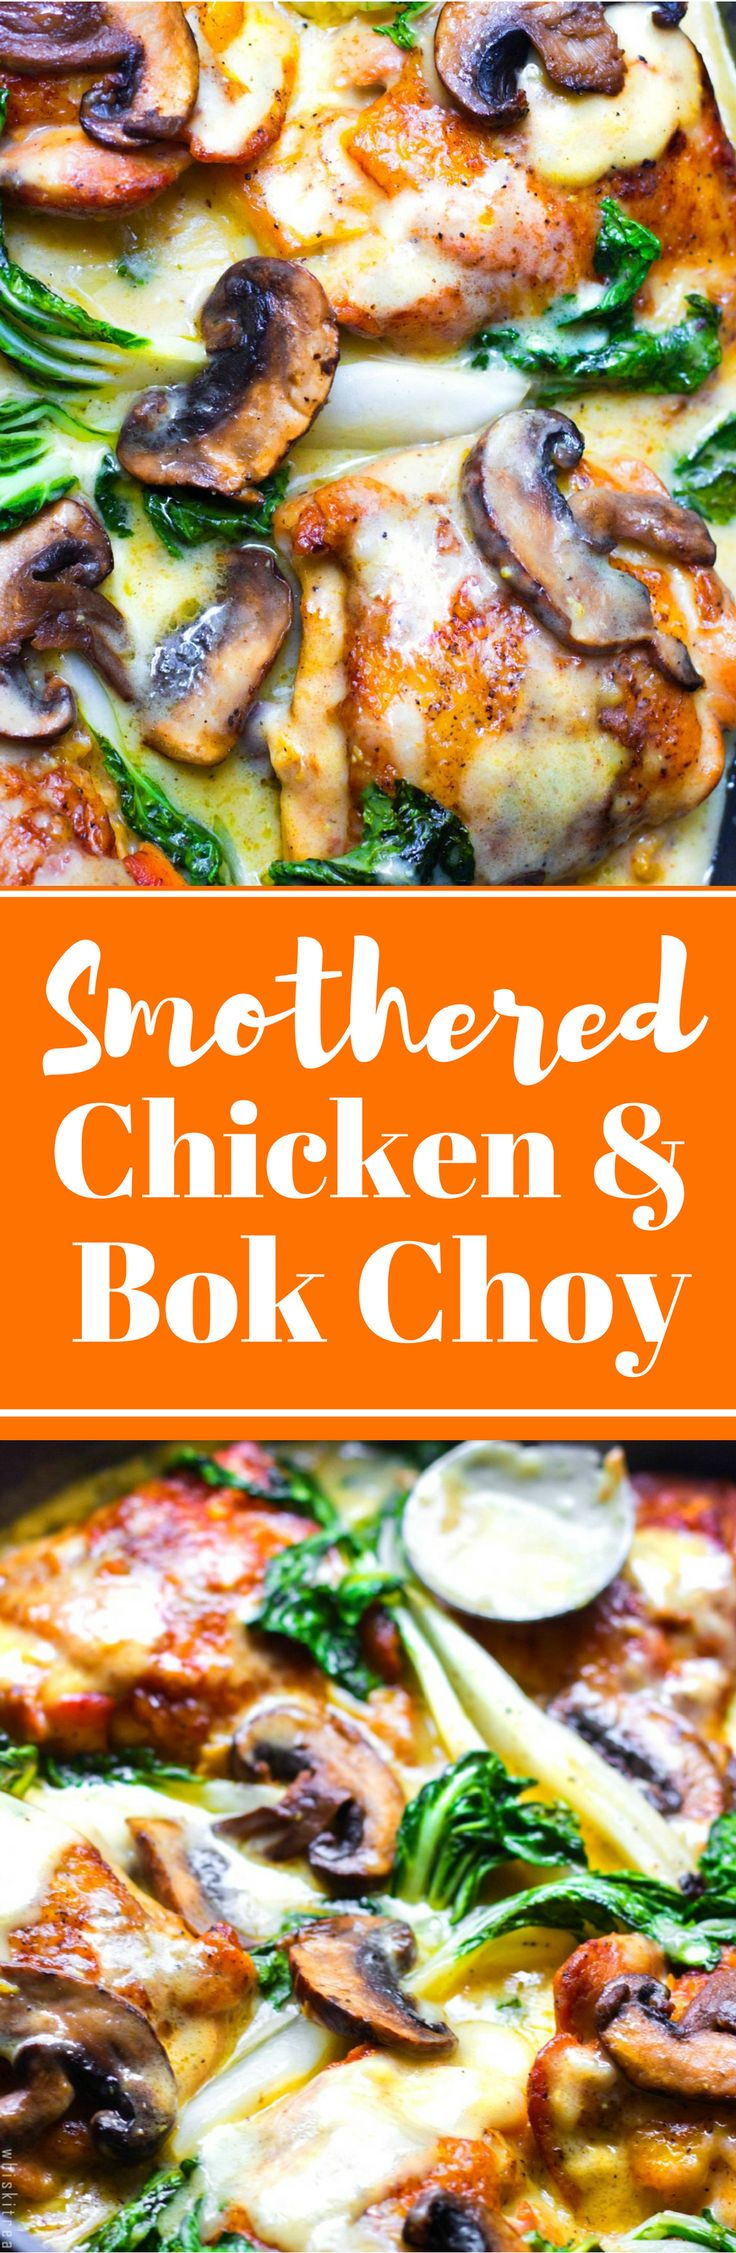 Smothered Chicken with Baby Bok Choy.